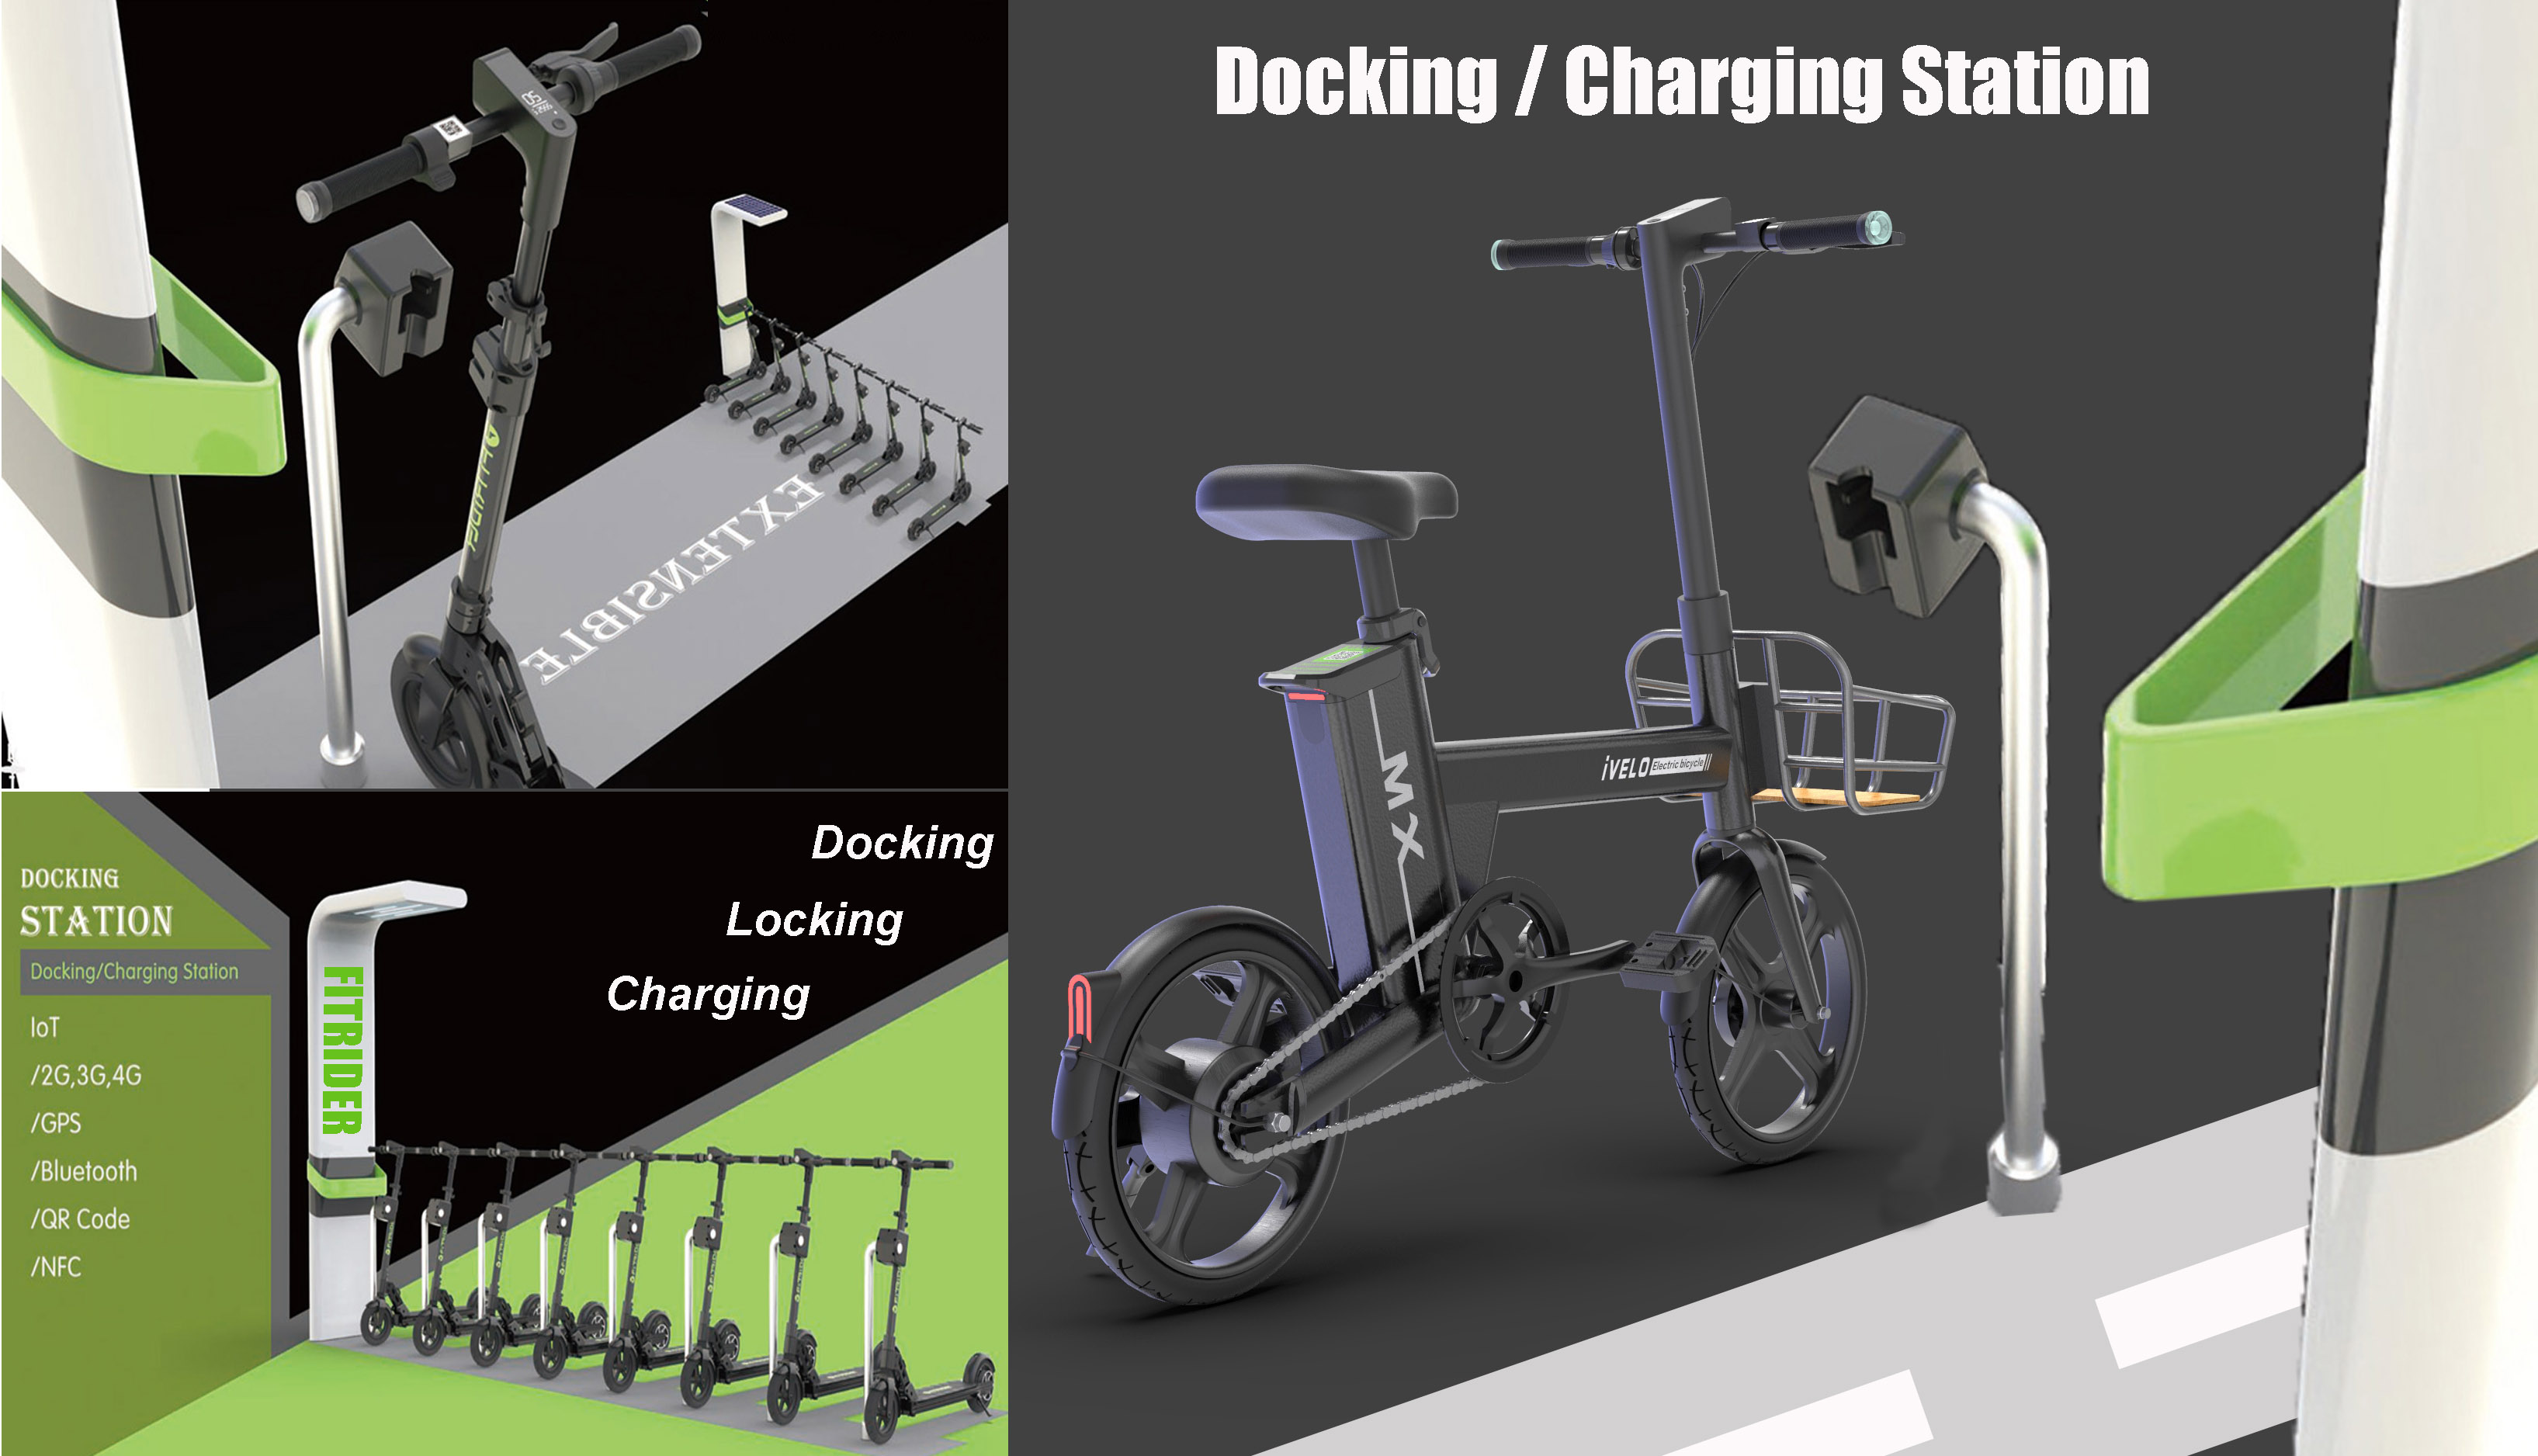 ivelo rideshare docking station parking station